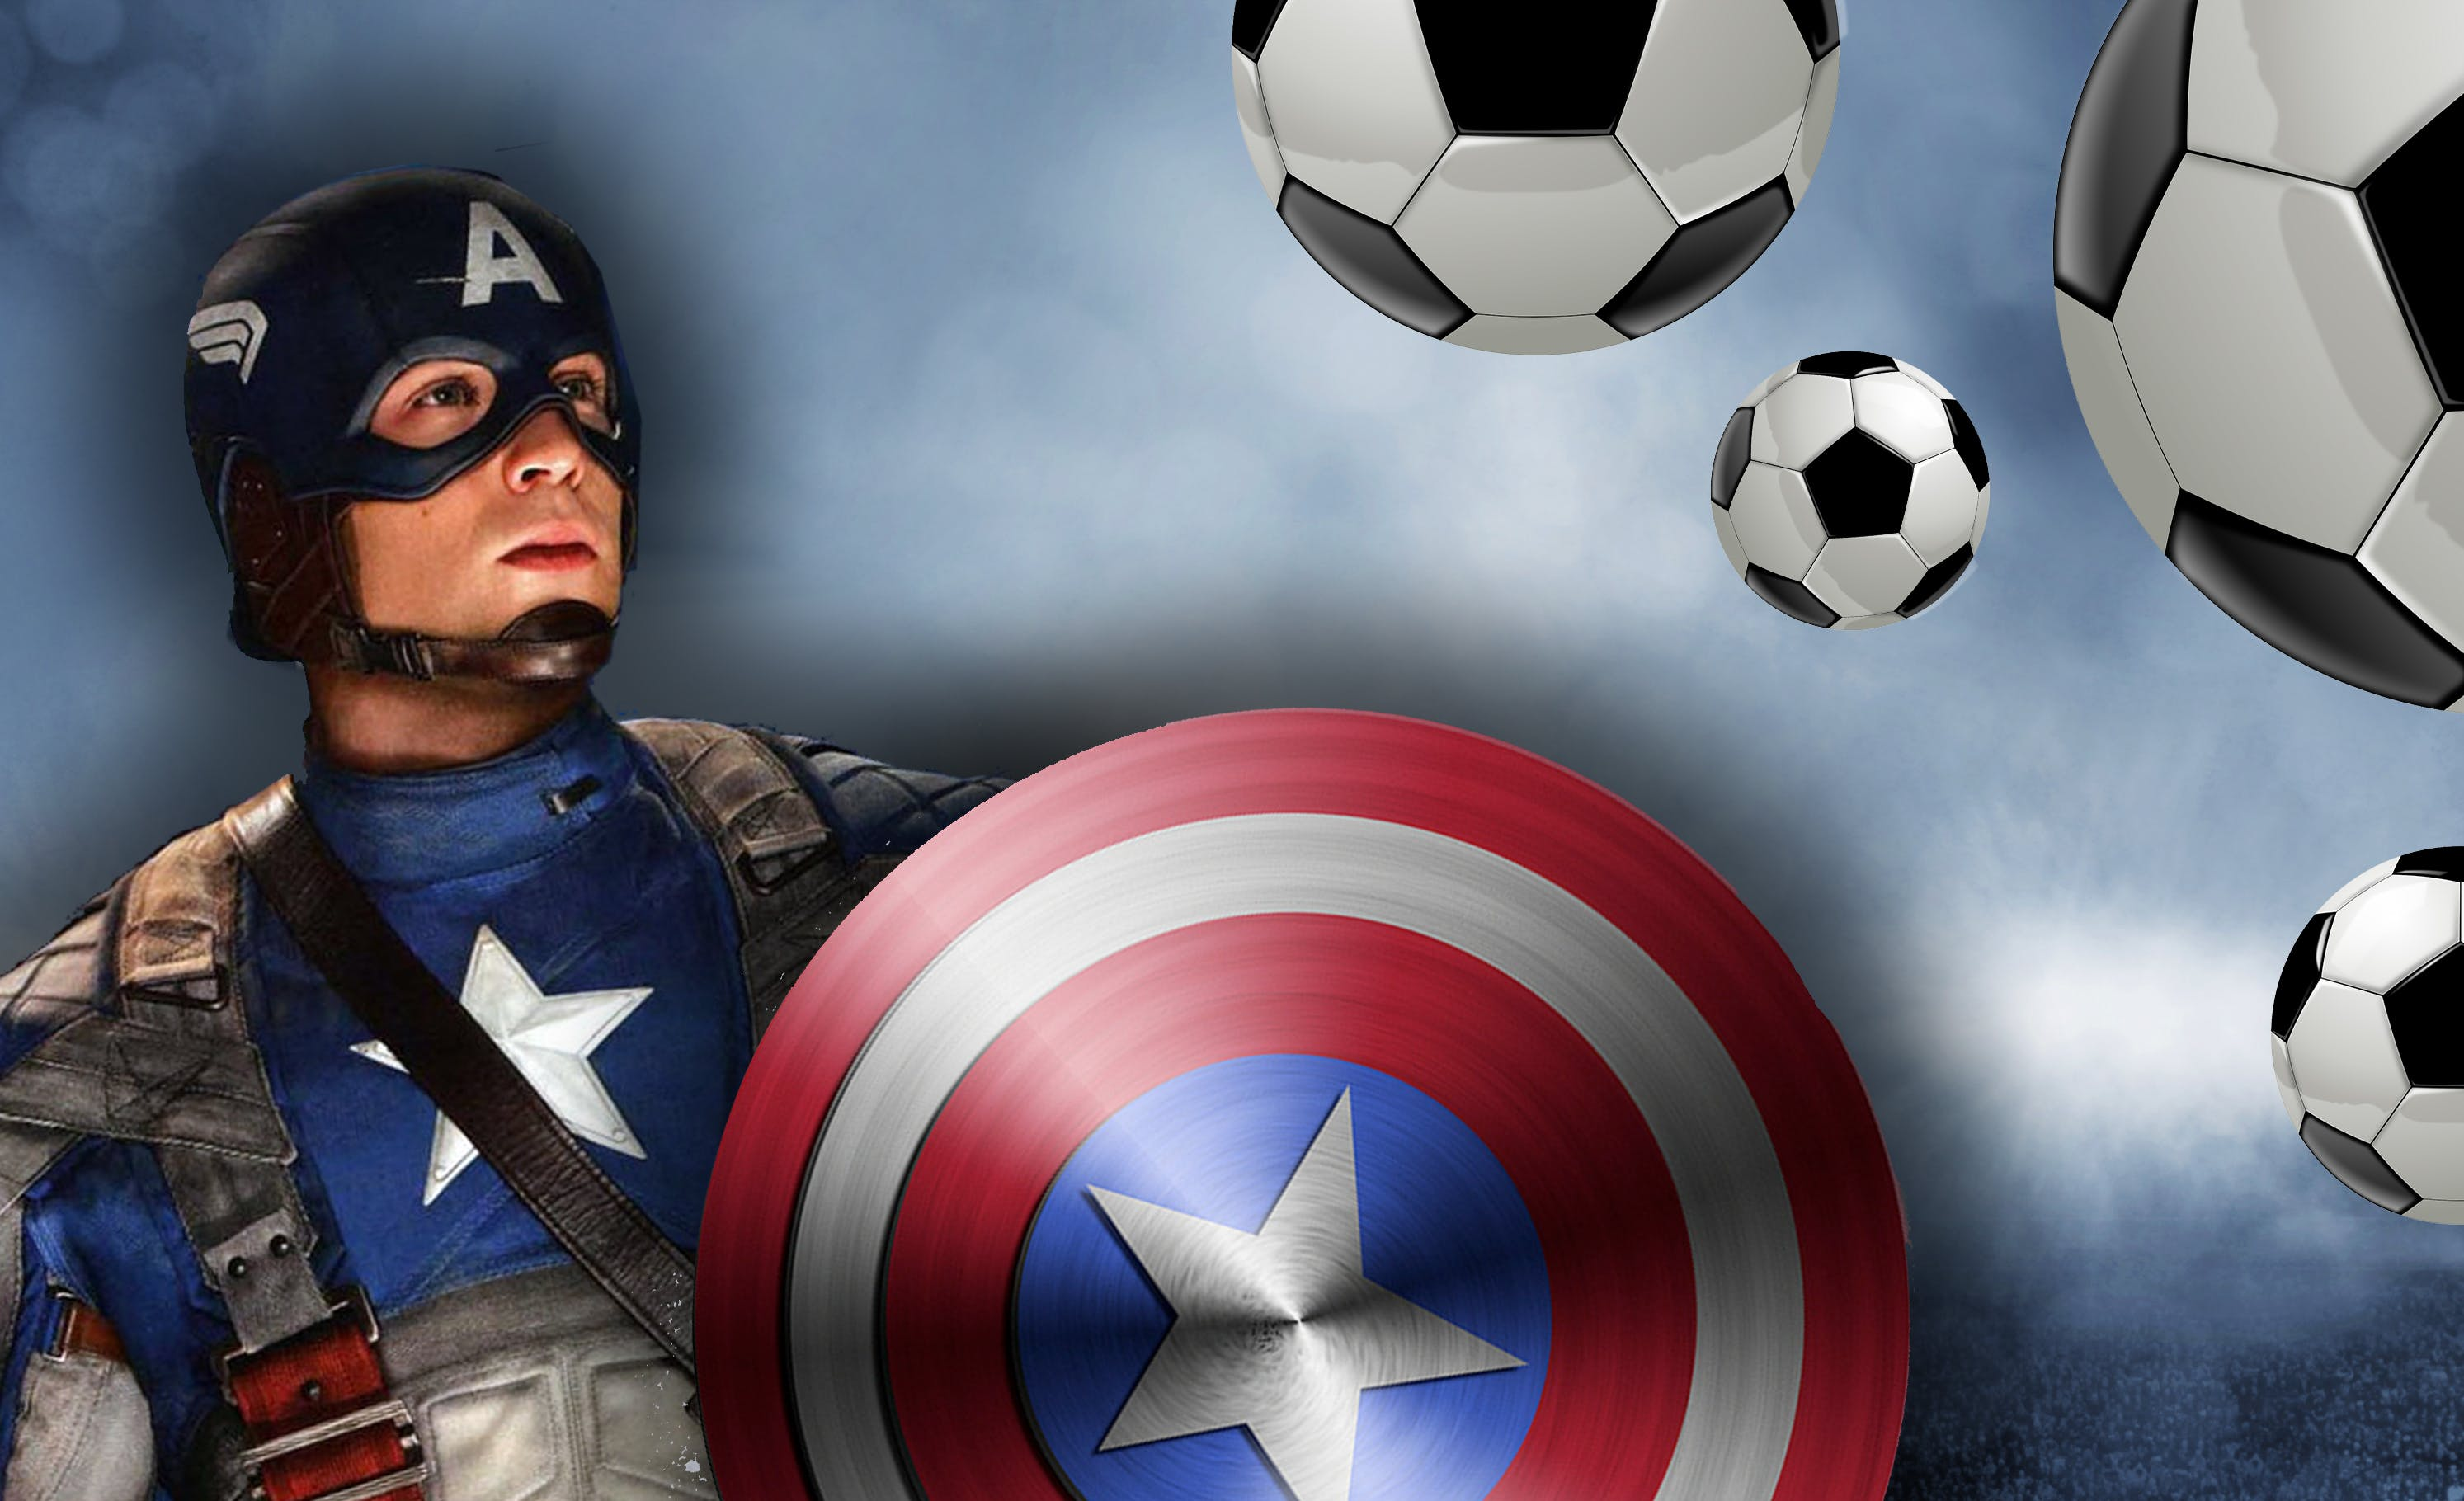 Captain America could take on an army of footballers